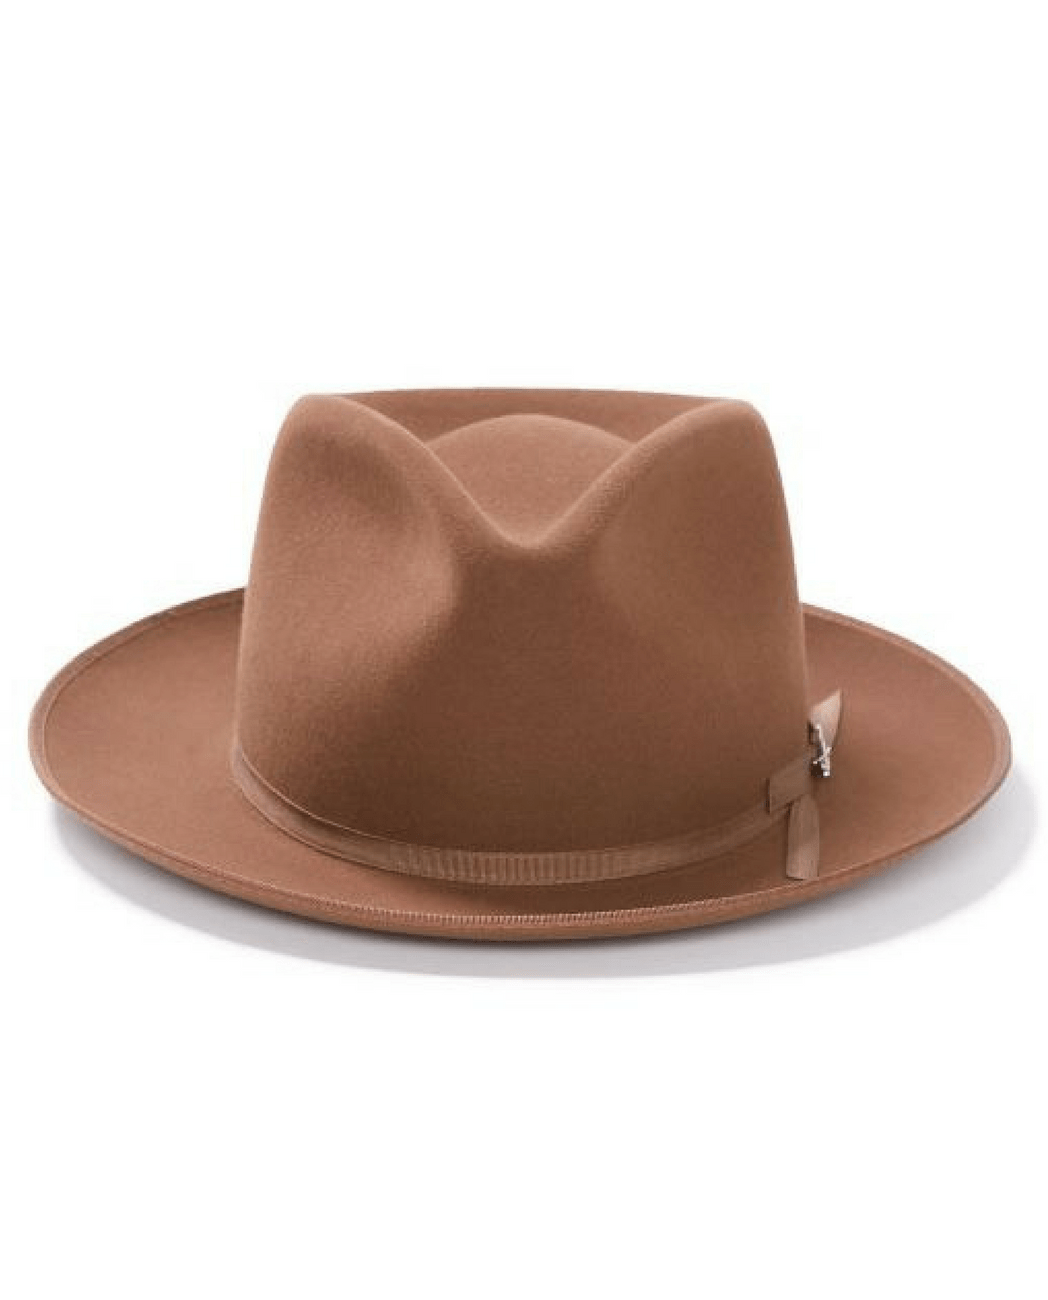 Stratoliner by  Stetson – Hollywood Hatters 99afdd4992c